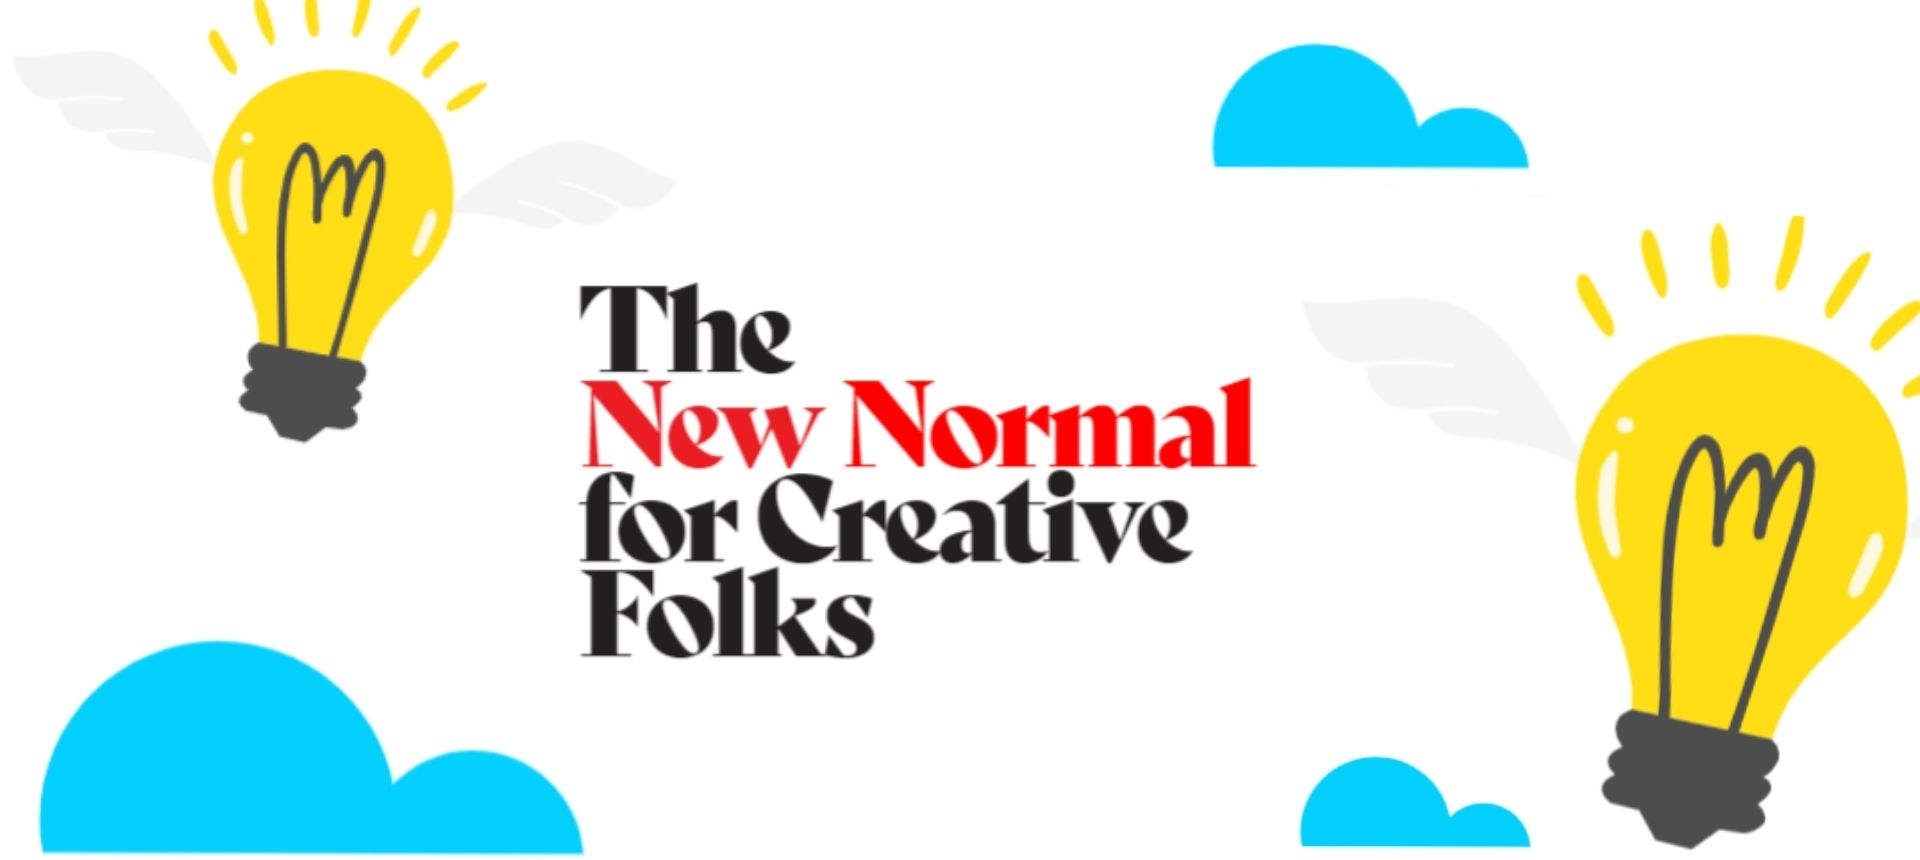 A new normal for creative folks